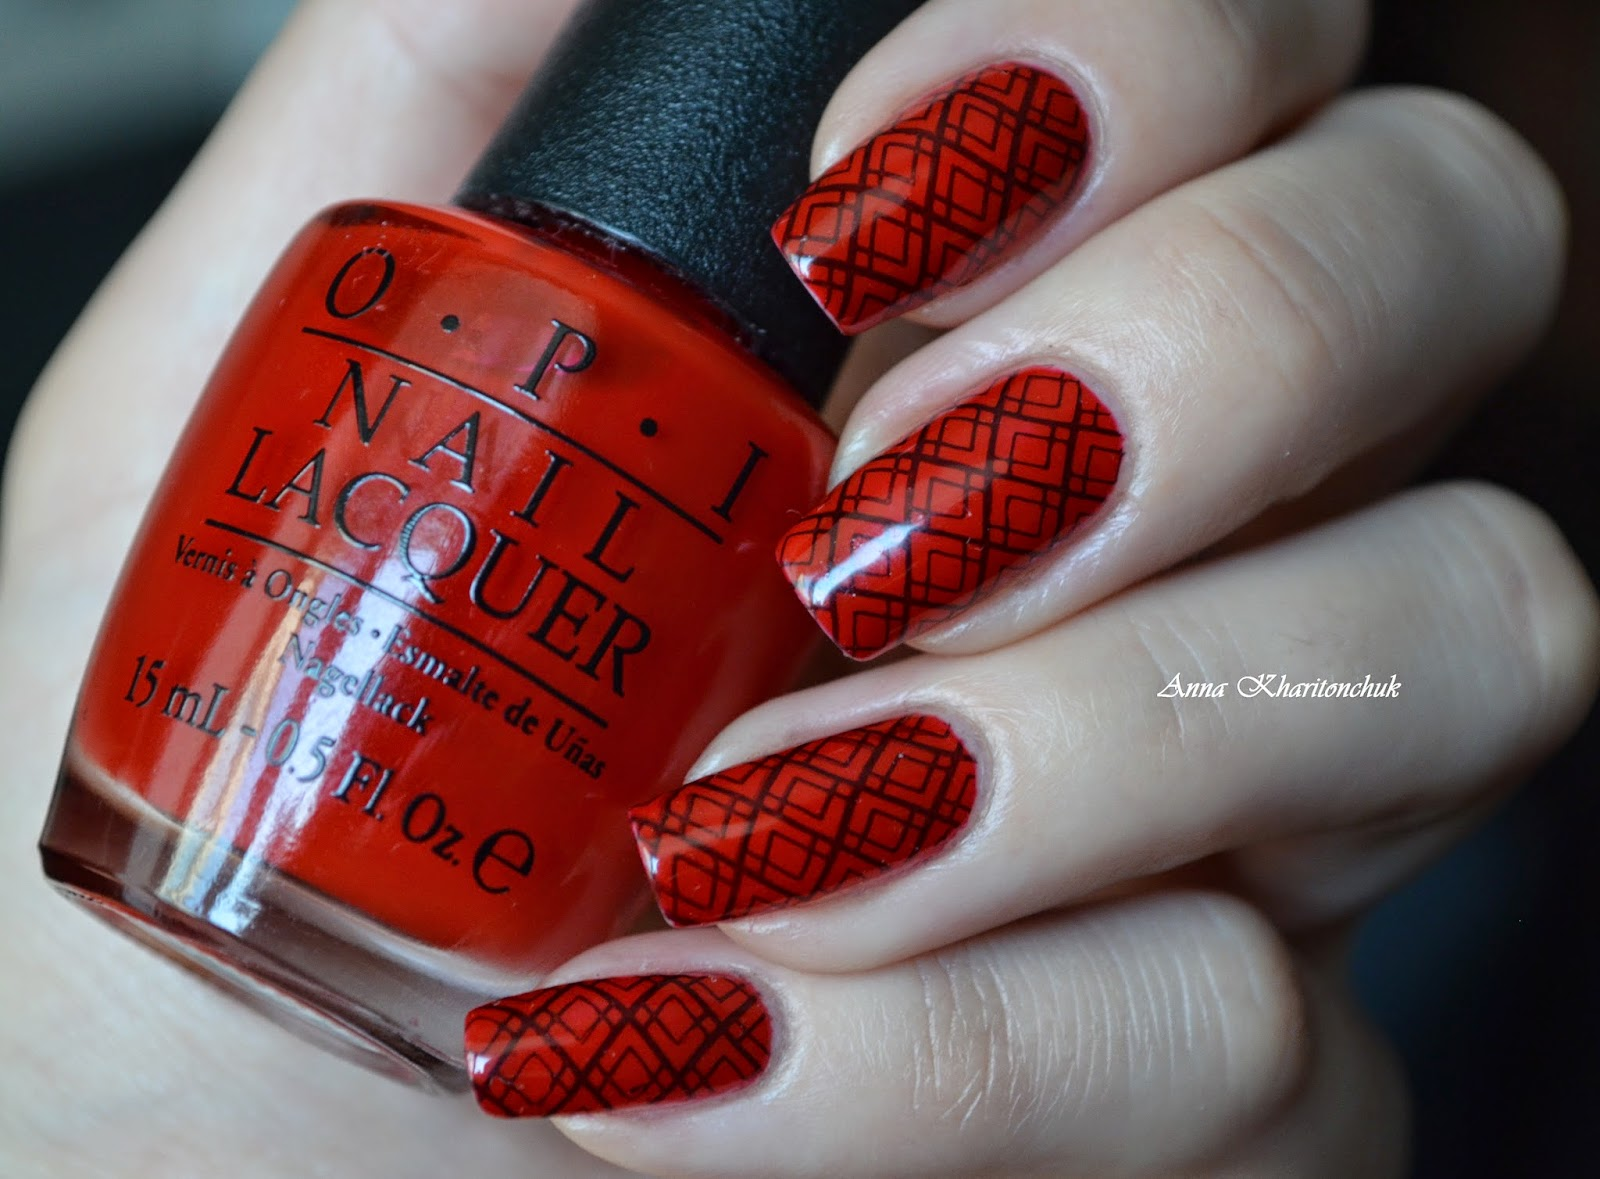 Winter11DNC: Красные ногти. Opi Red Hot Rio и стемпинг hehe 005